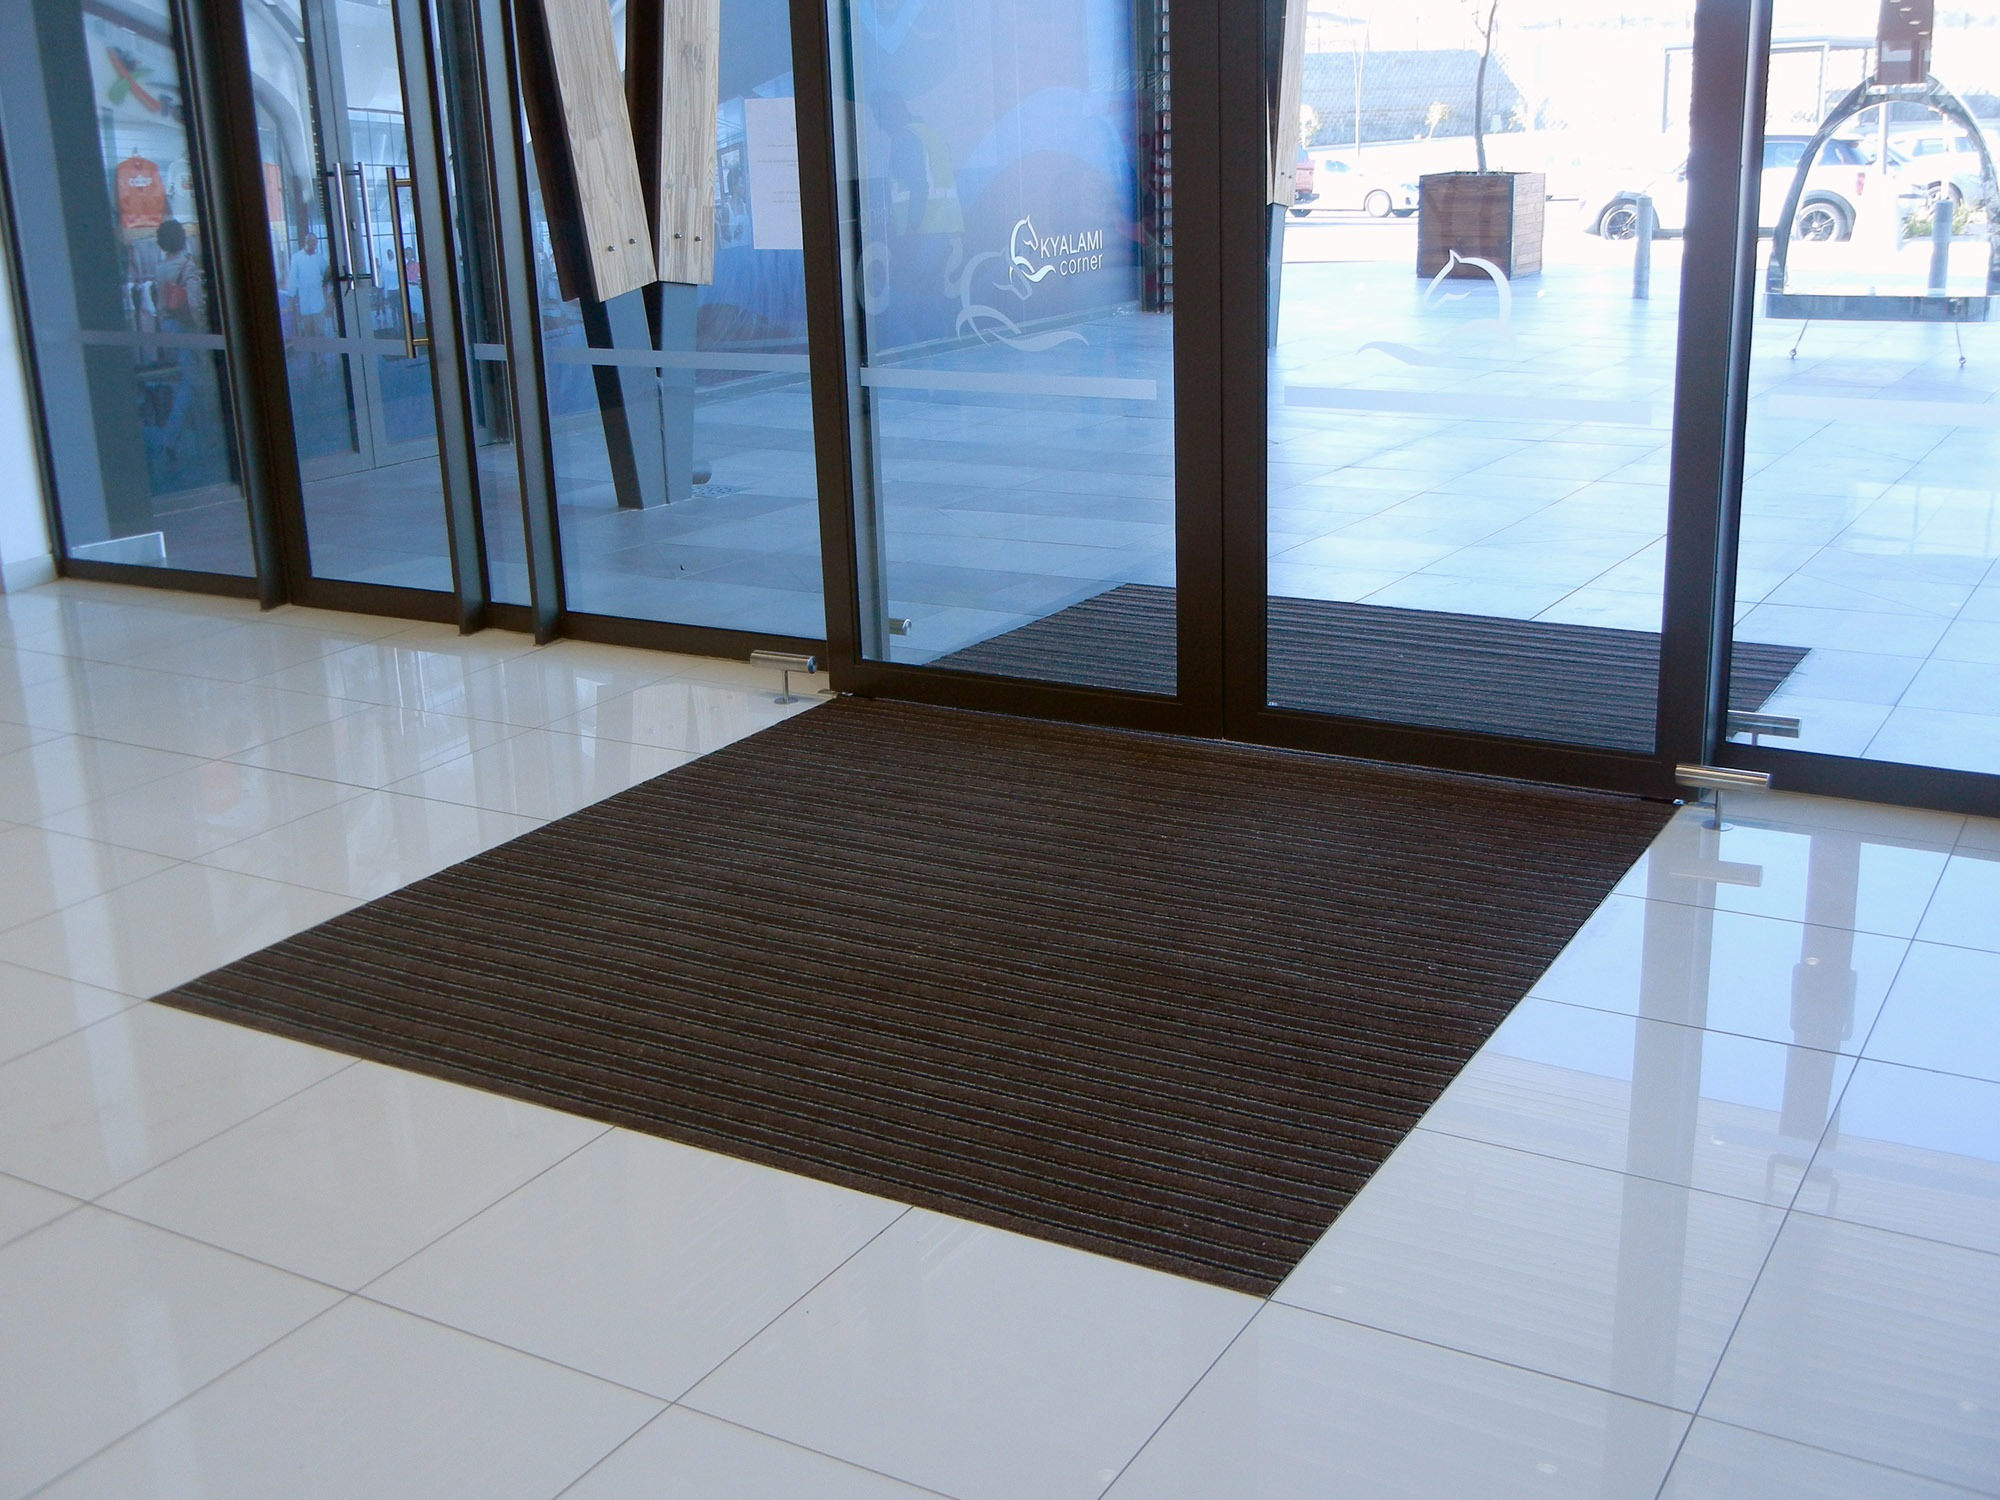 Kyalami Corner entrance matting